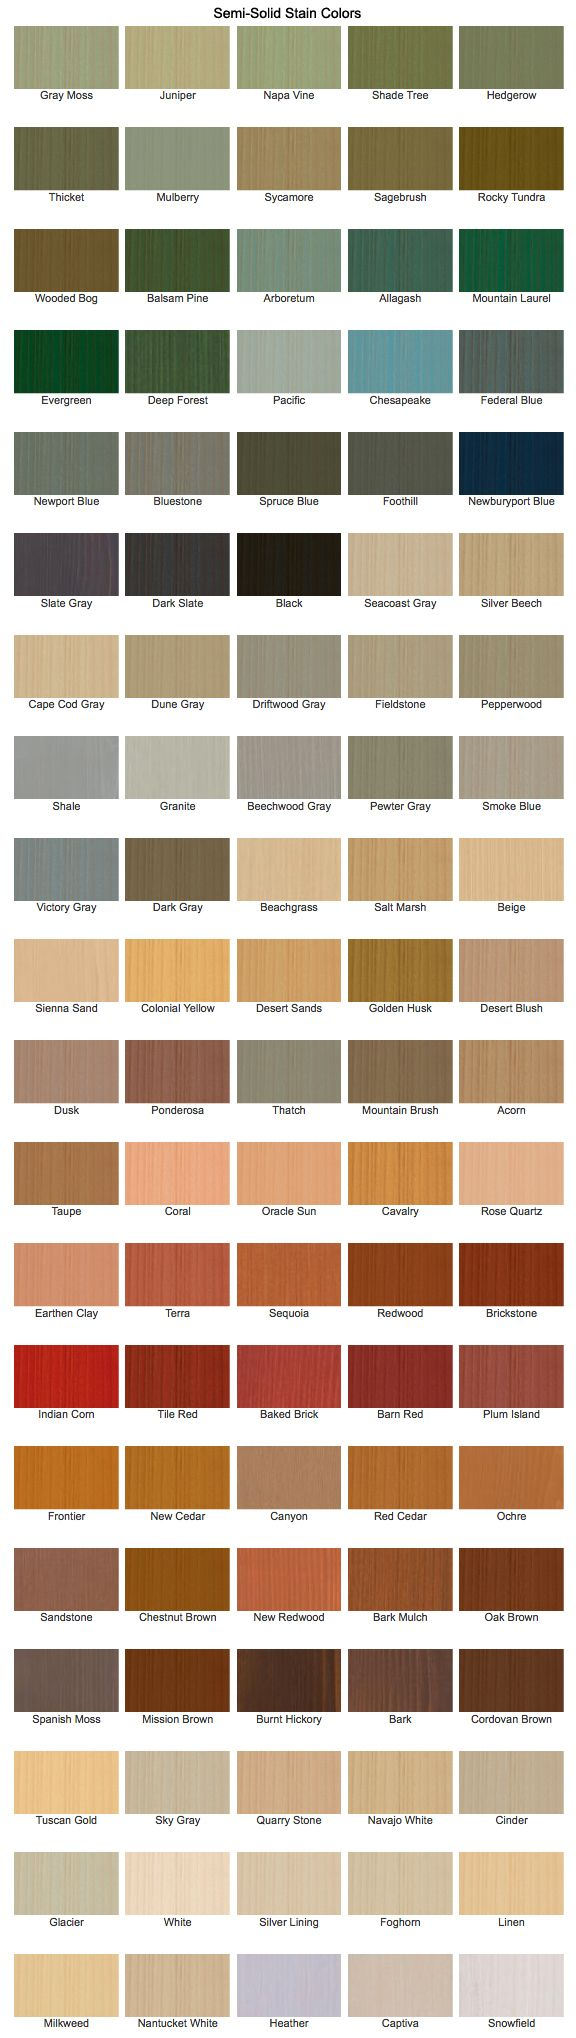 Semi Solid Stain Semi Opaque Stain Colors Cabot Solid Stain Colors Solid Stain Deck Stain Colors